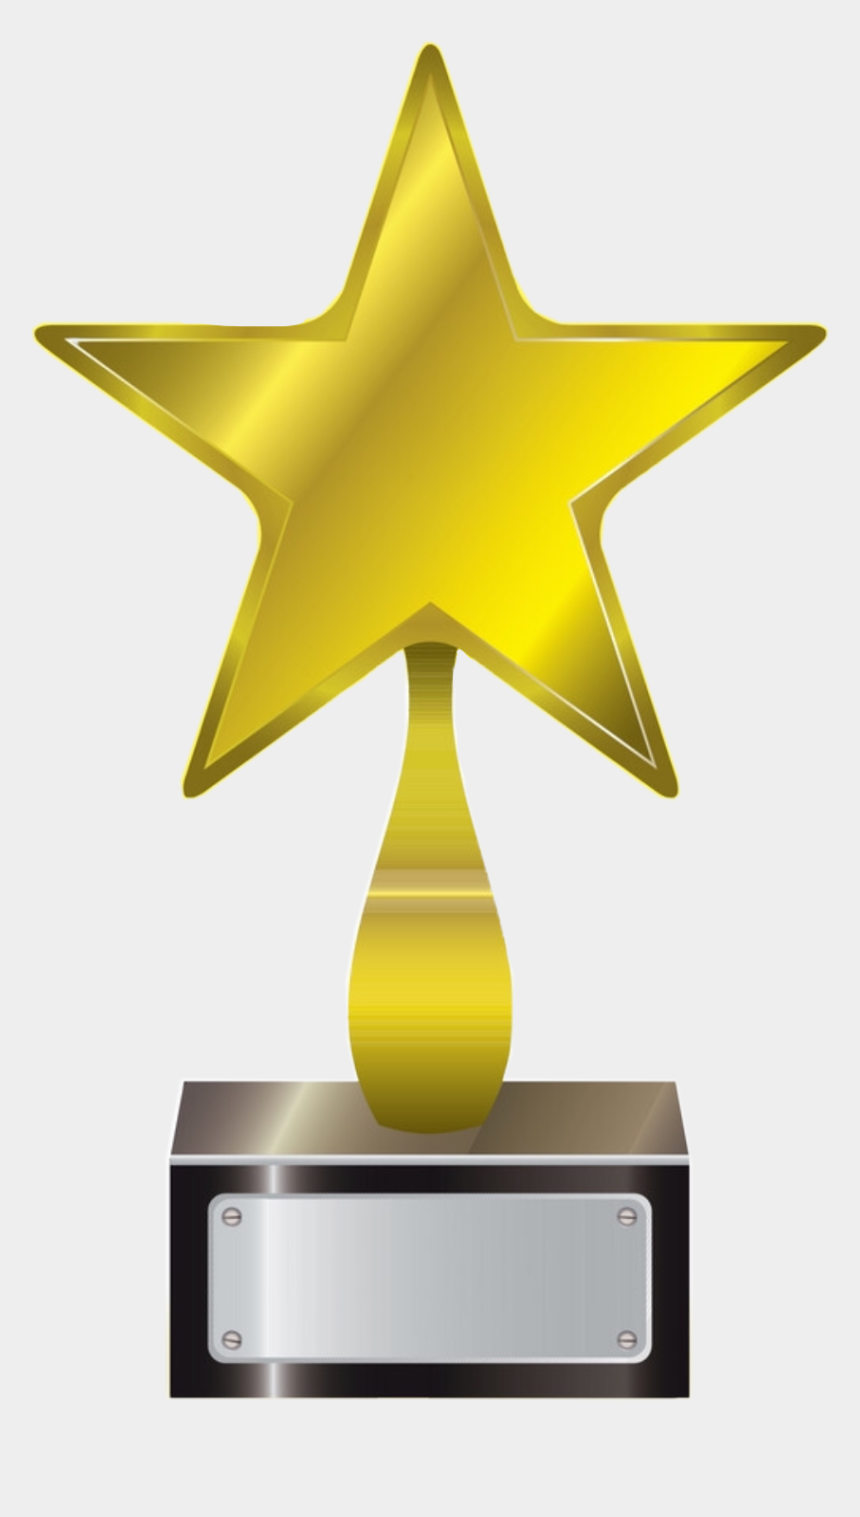 star reward clipart, Cartoons - Star Achievement Award